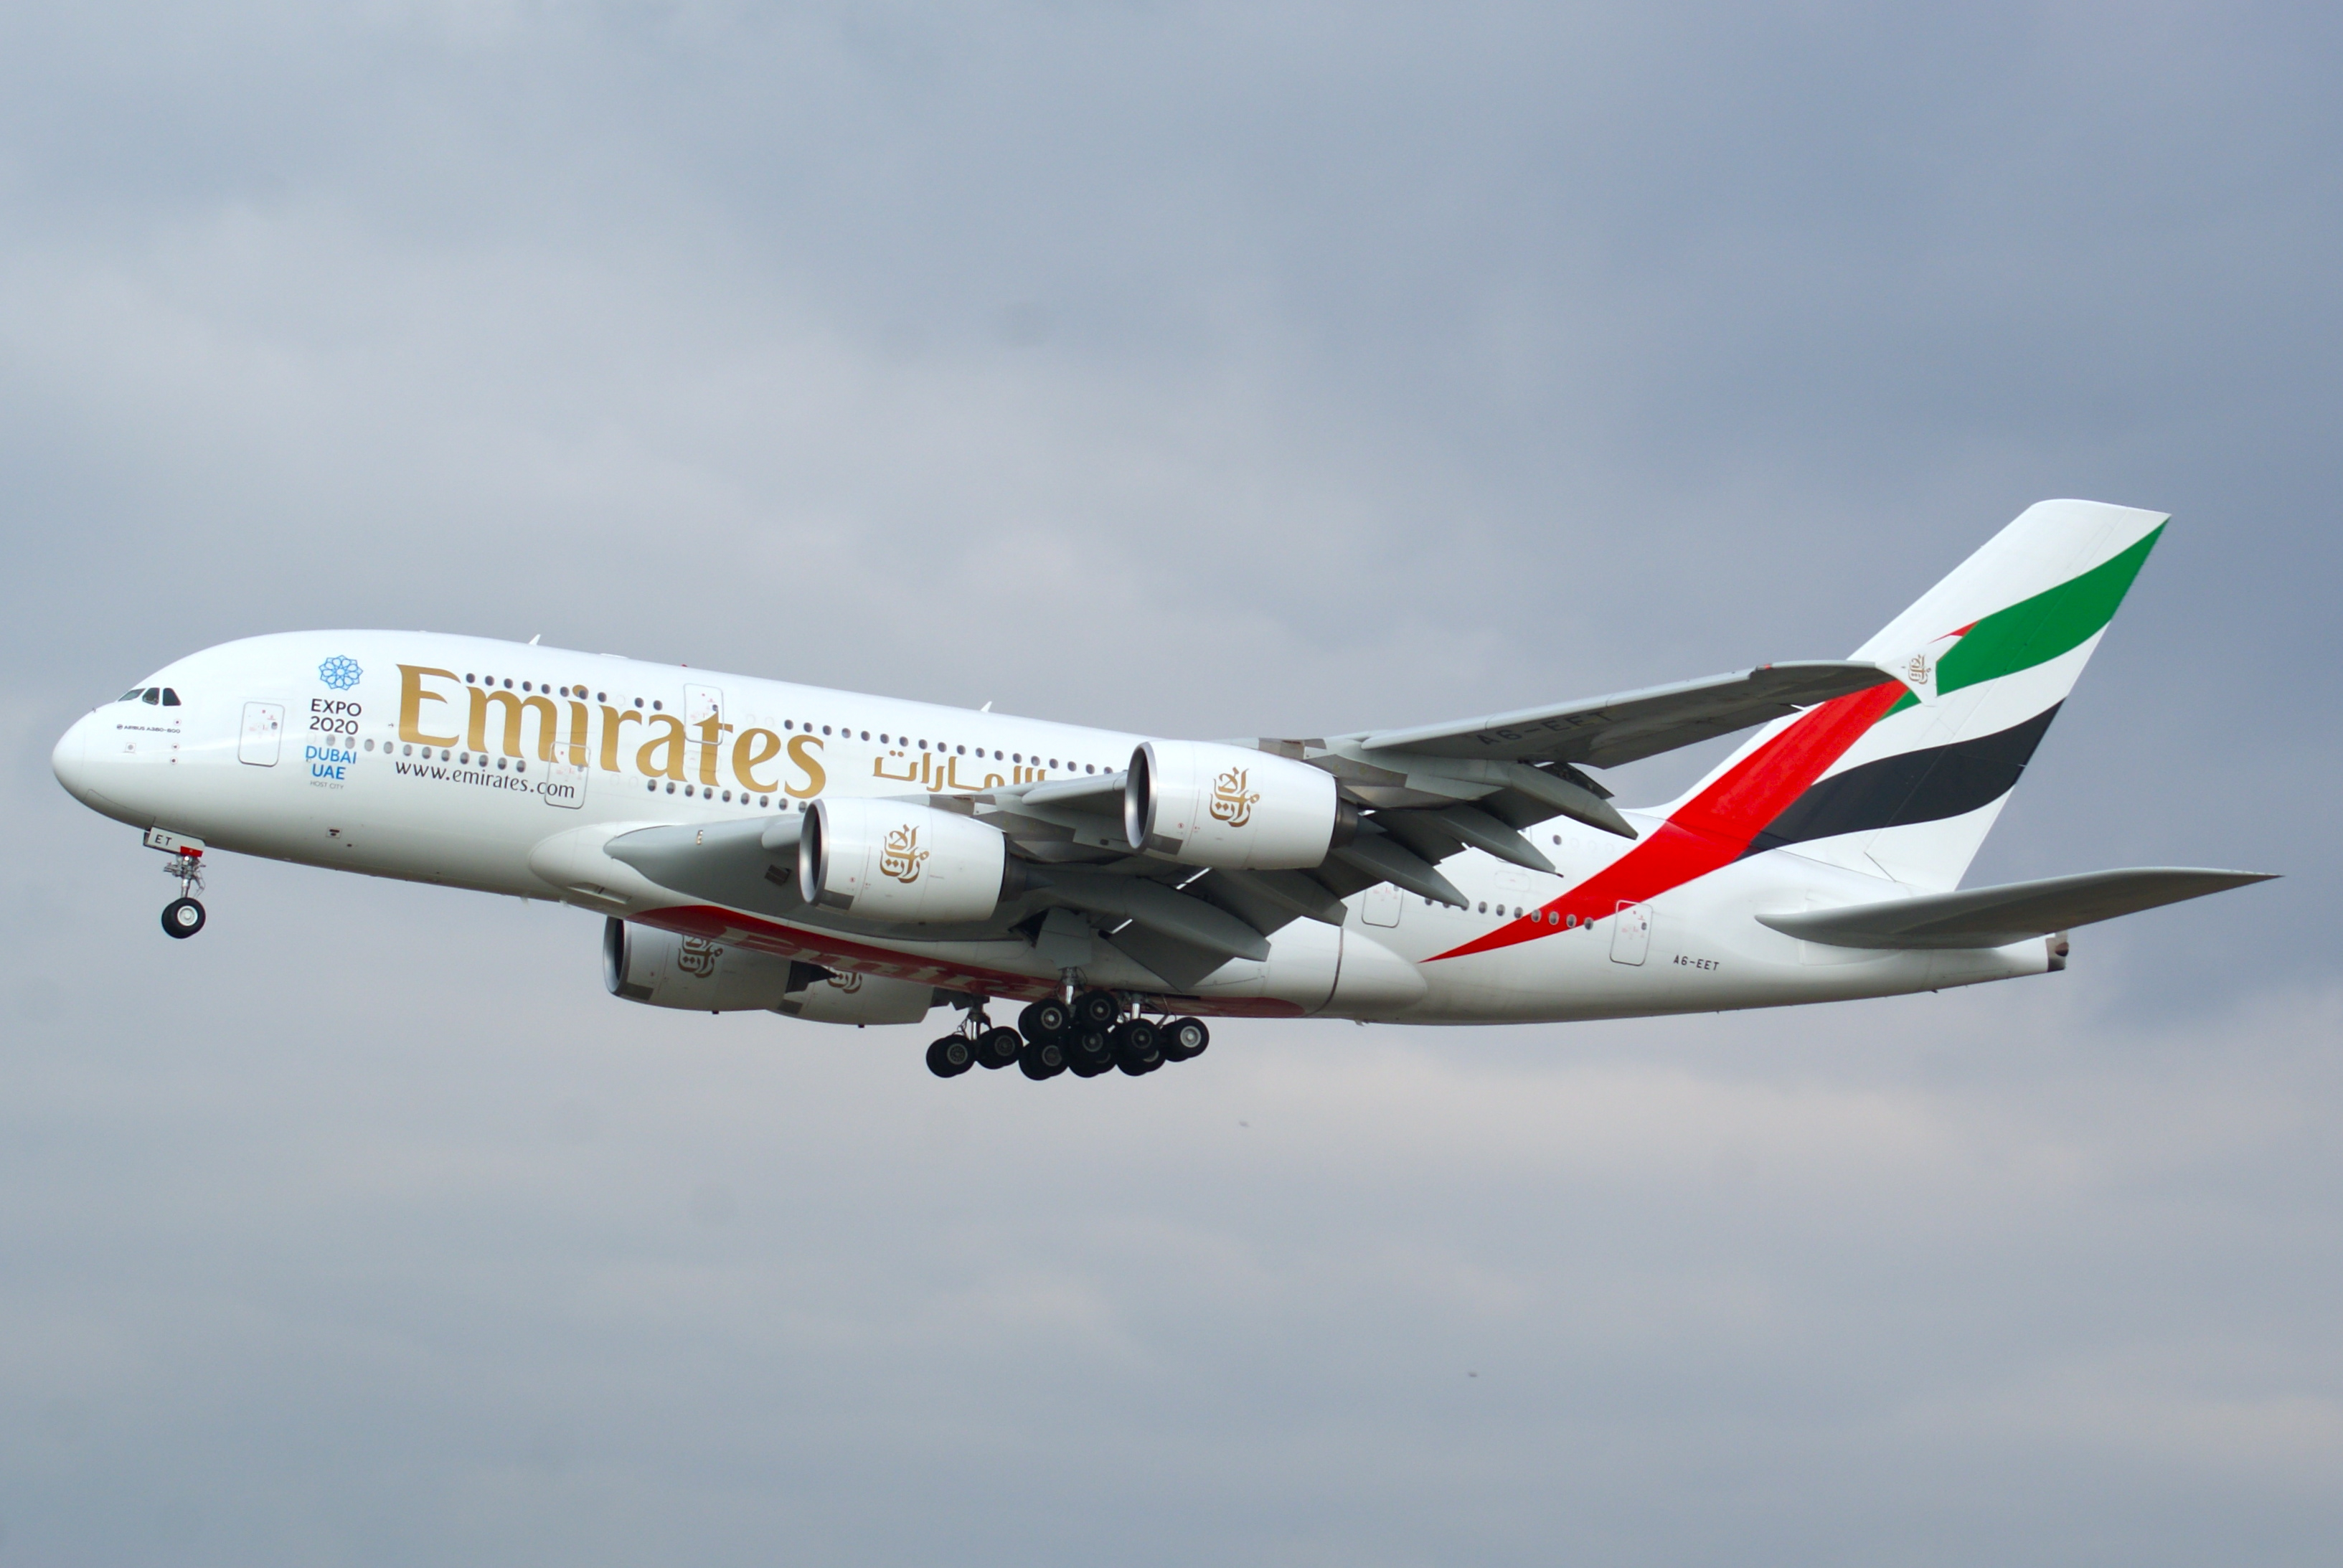 Emirates Airbus A380 approaching Frankfurt Airport